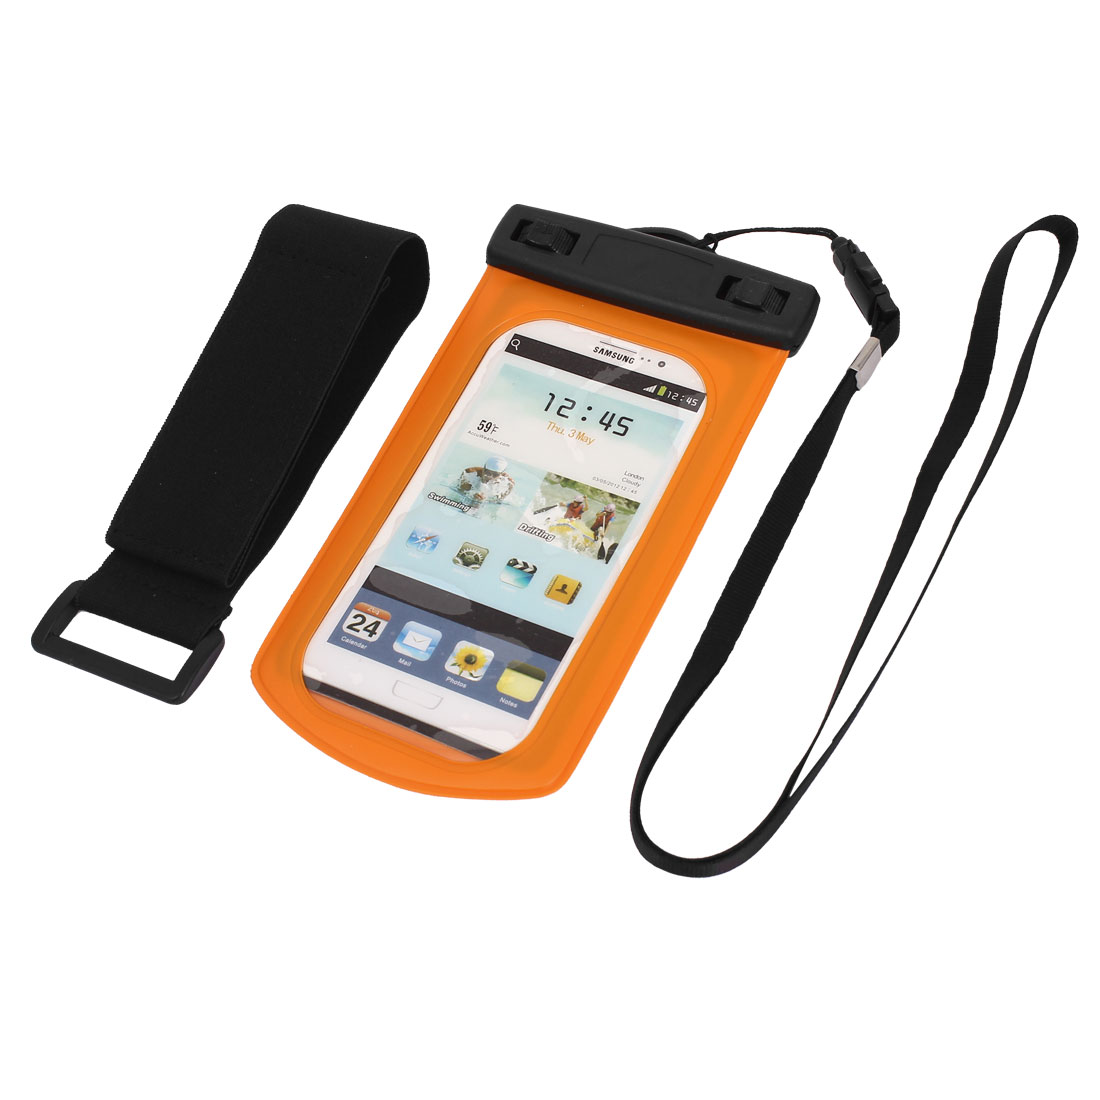 Waterproof Case Dry Bag Cover Skin Pouch Sleeve Orange for Galaxy S3 i9300